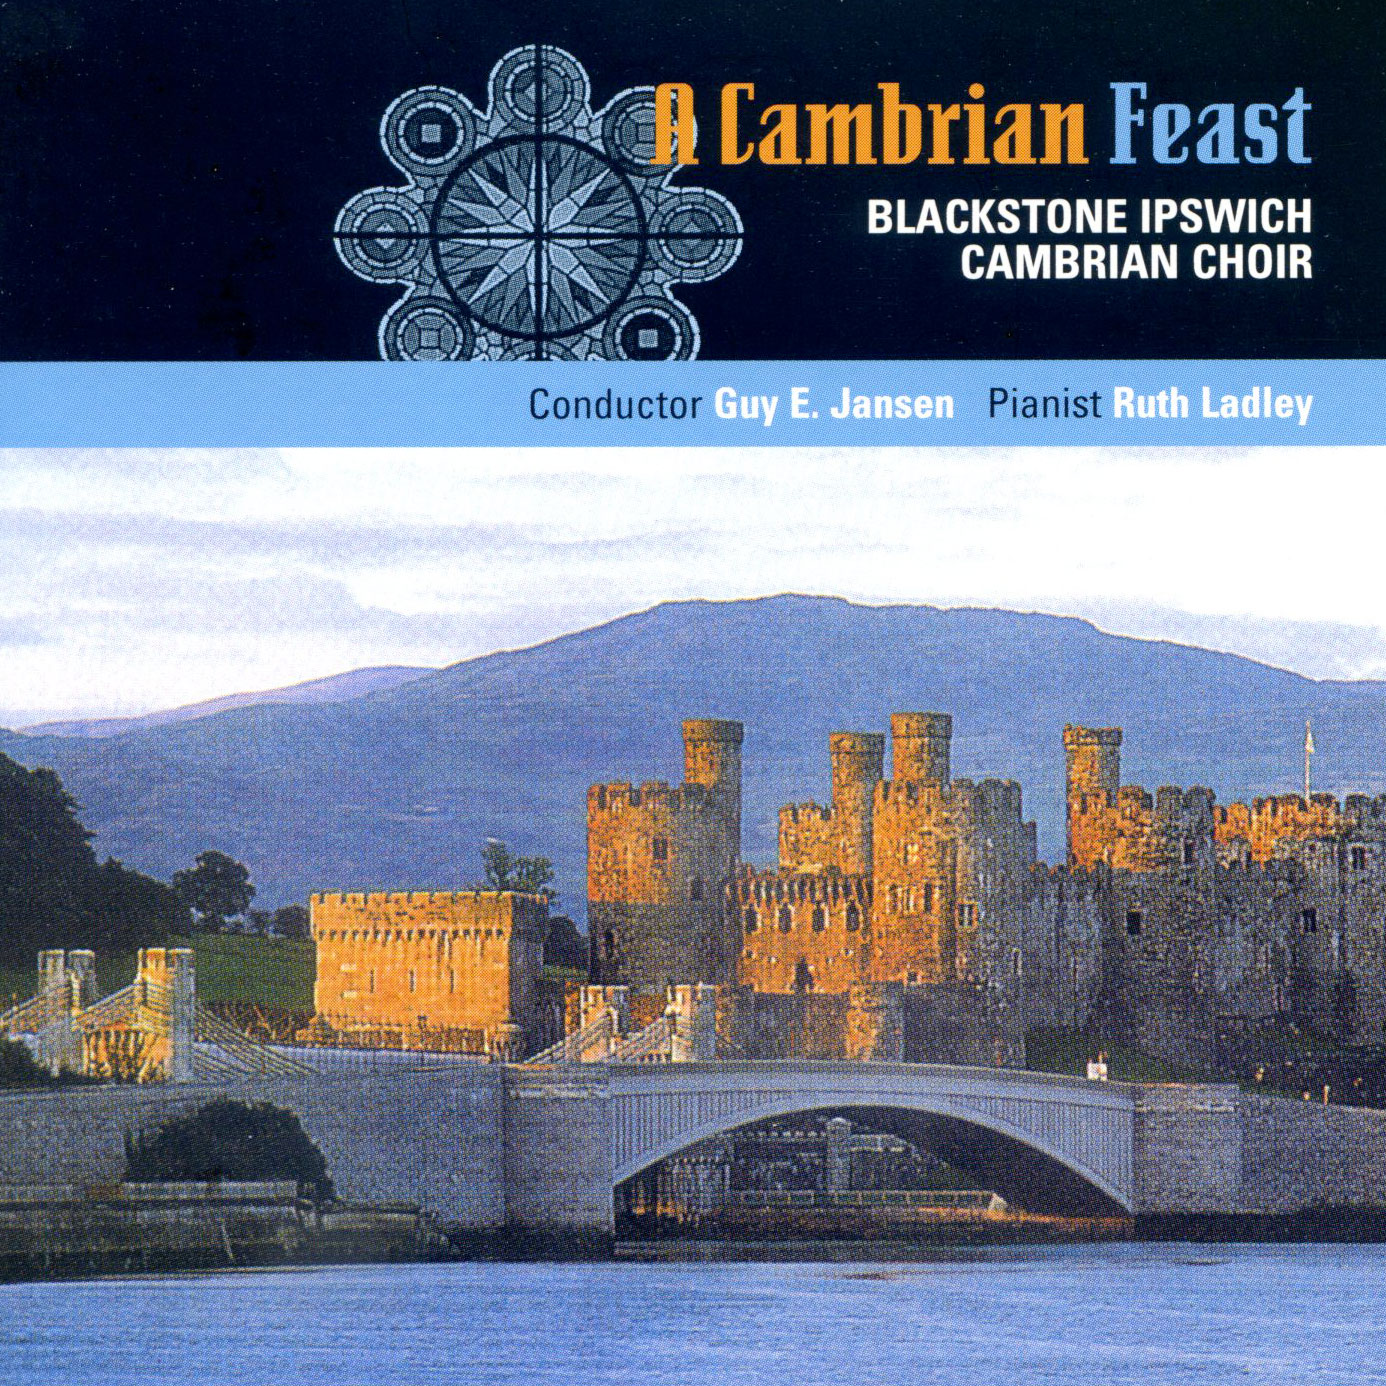 CD Recordings - A Cambrian Feast